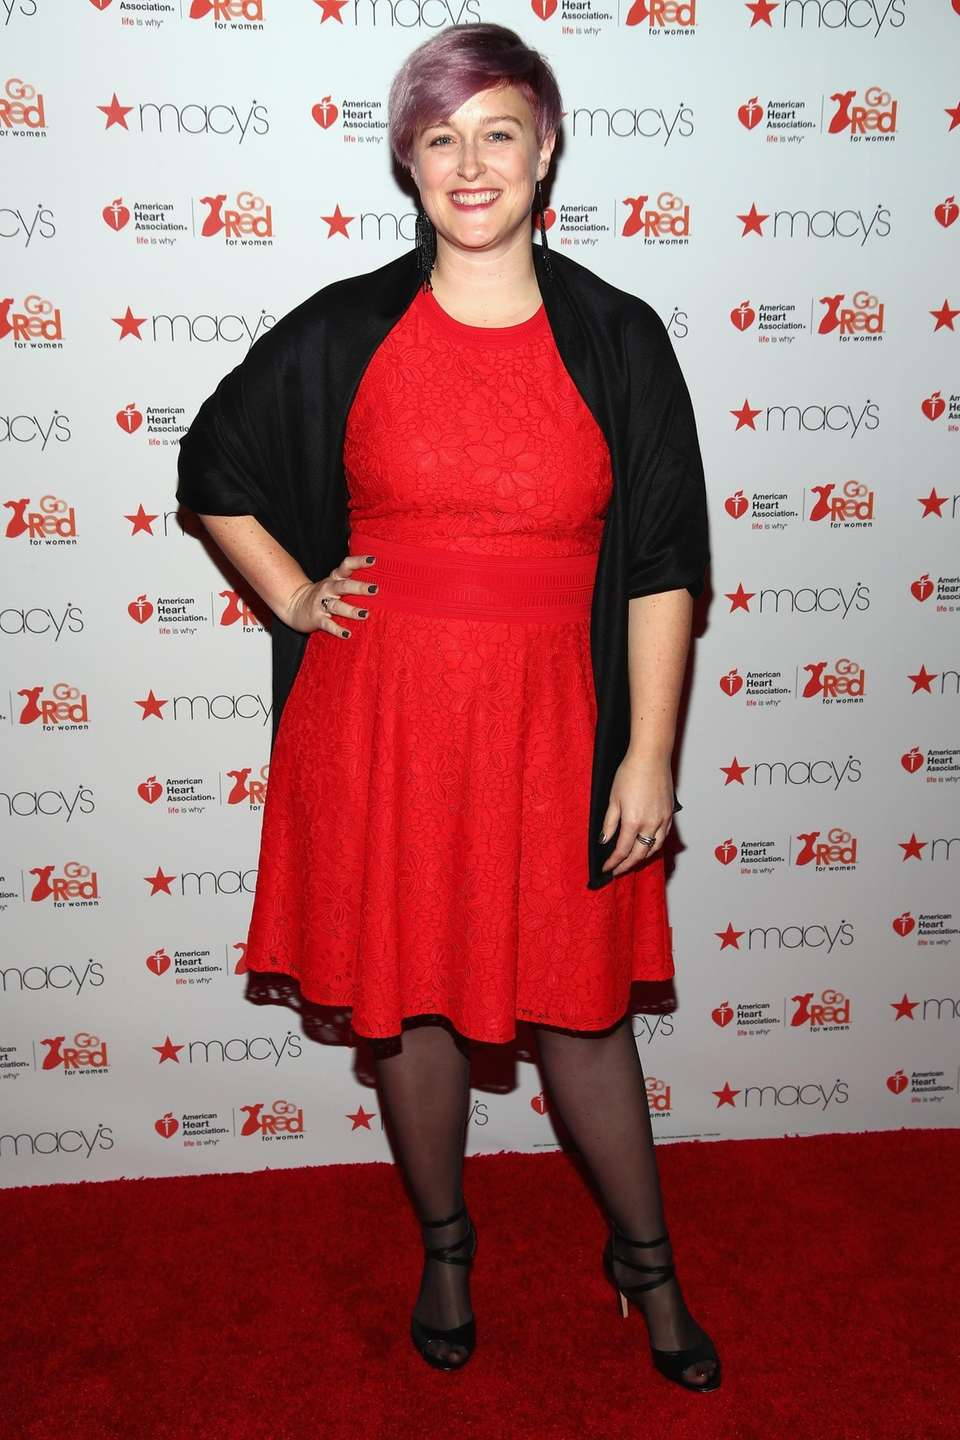 Designer Bethany Meuleners attends the American Heart Association's